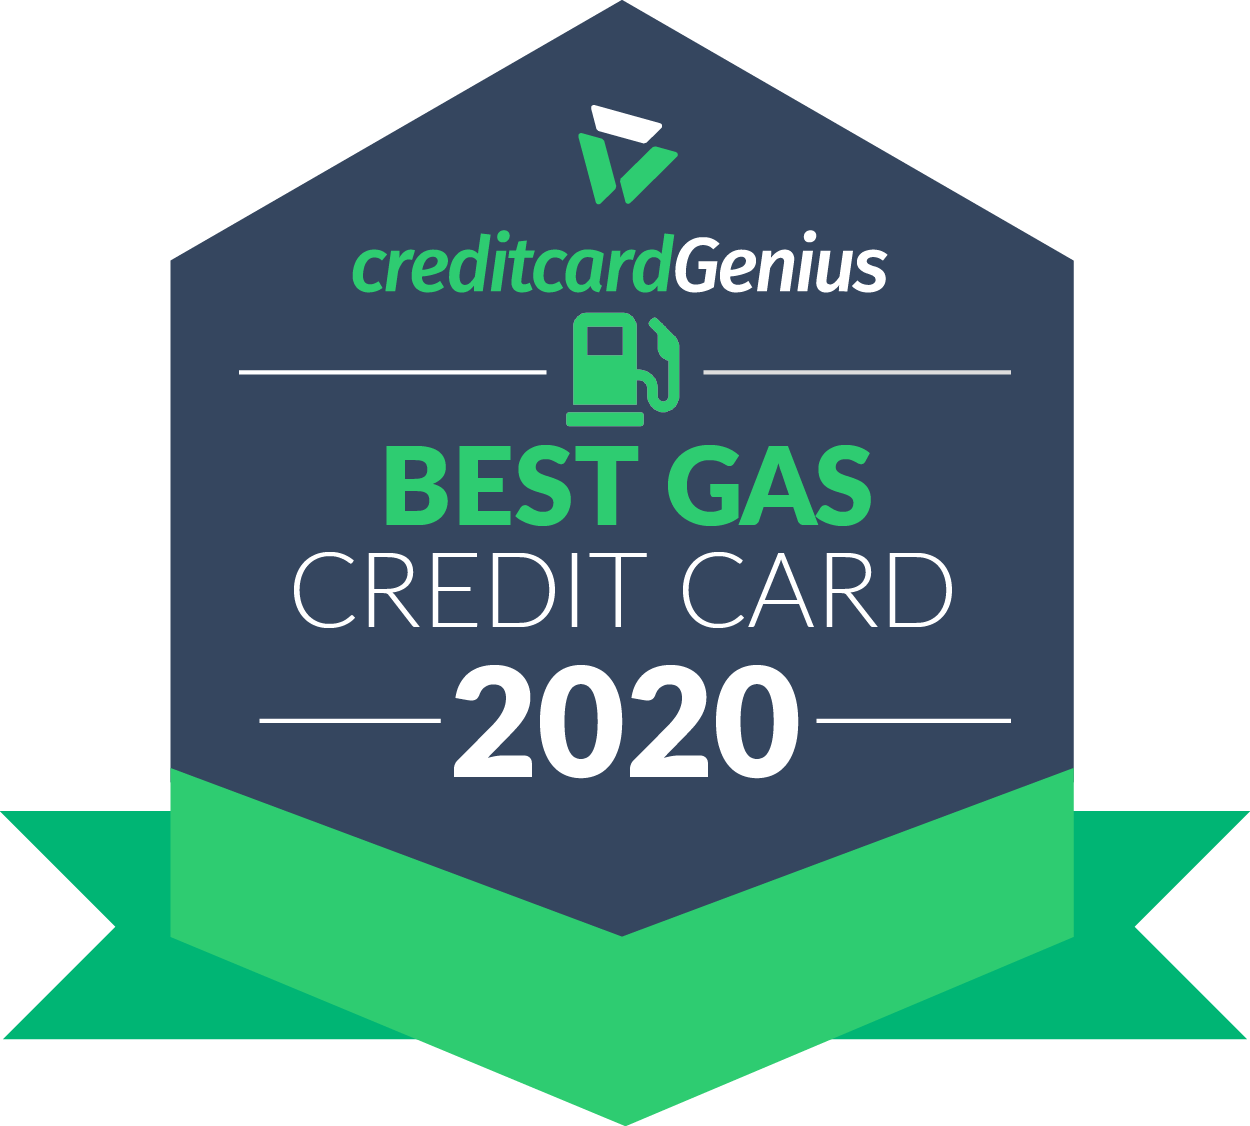 Best gas credit card in Canada for 2020 award seal